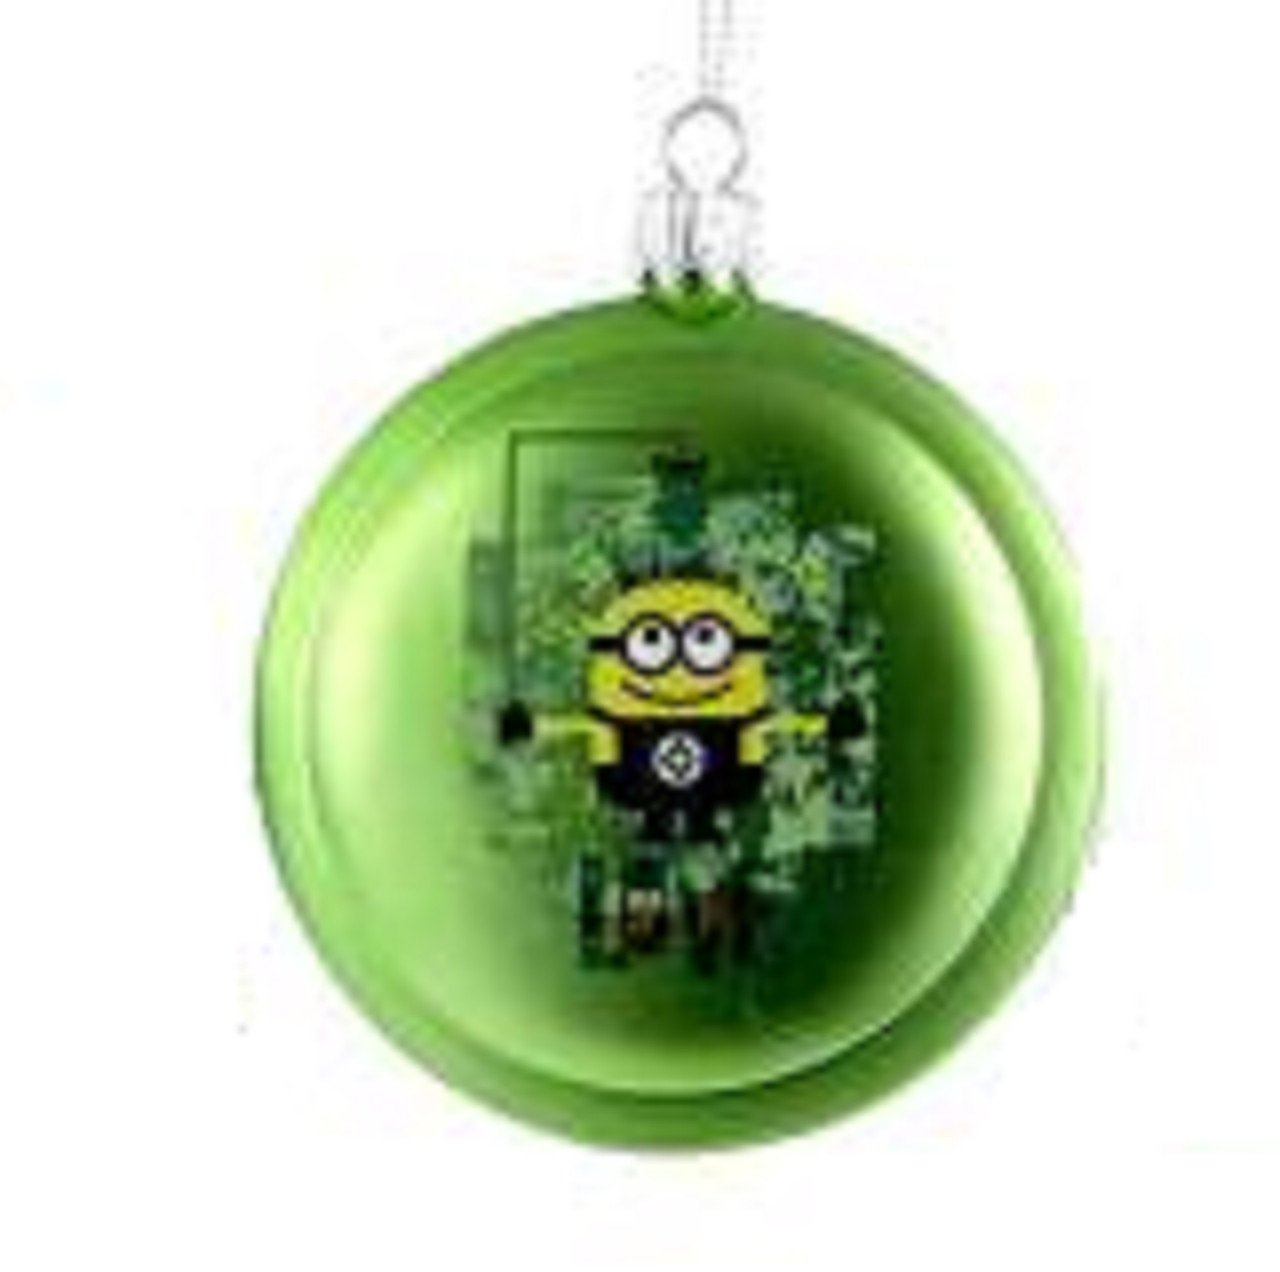 35 despicable me lime green minions love disc christmas 35 despicable me lime green minions love disc christmas ornament 31803689 biocorpaavc Image collections